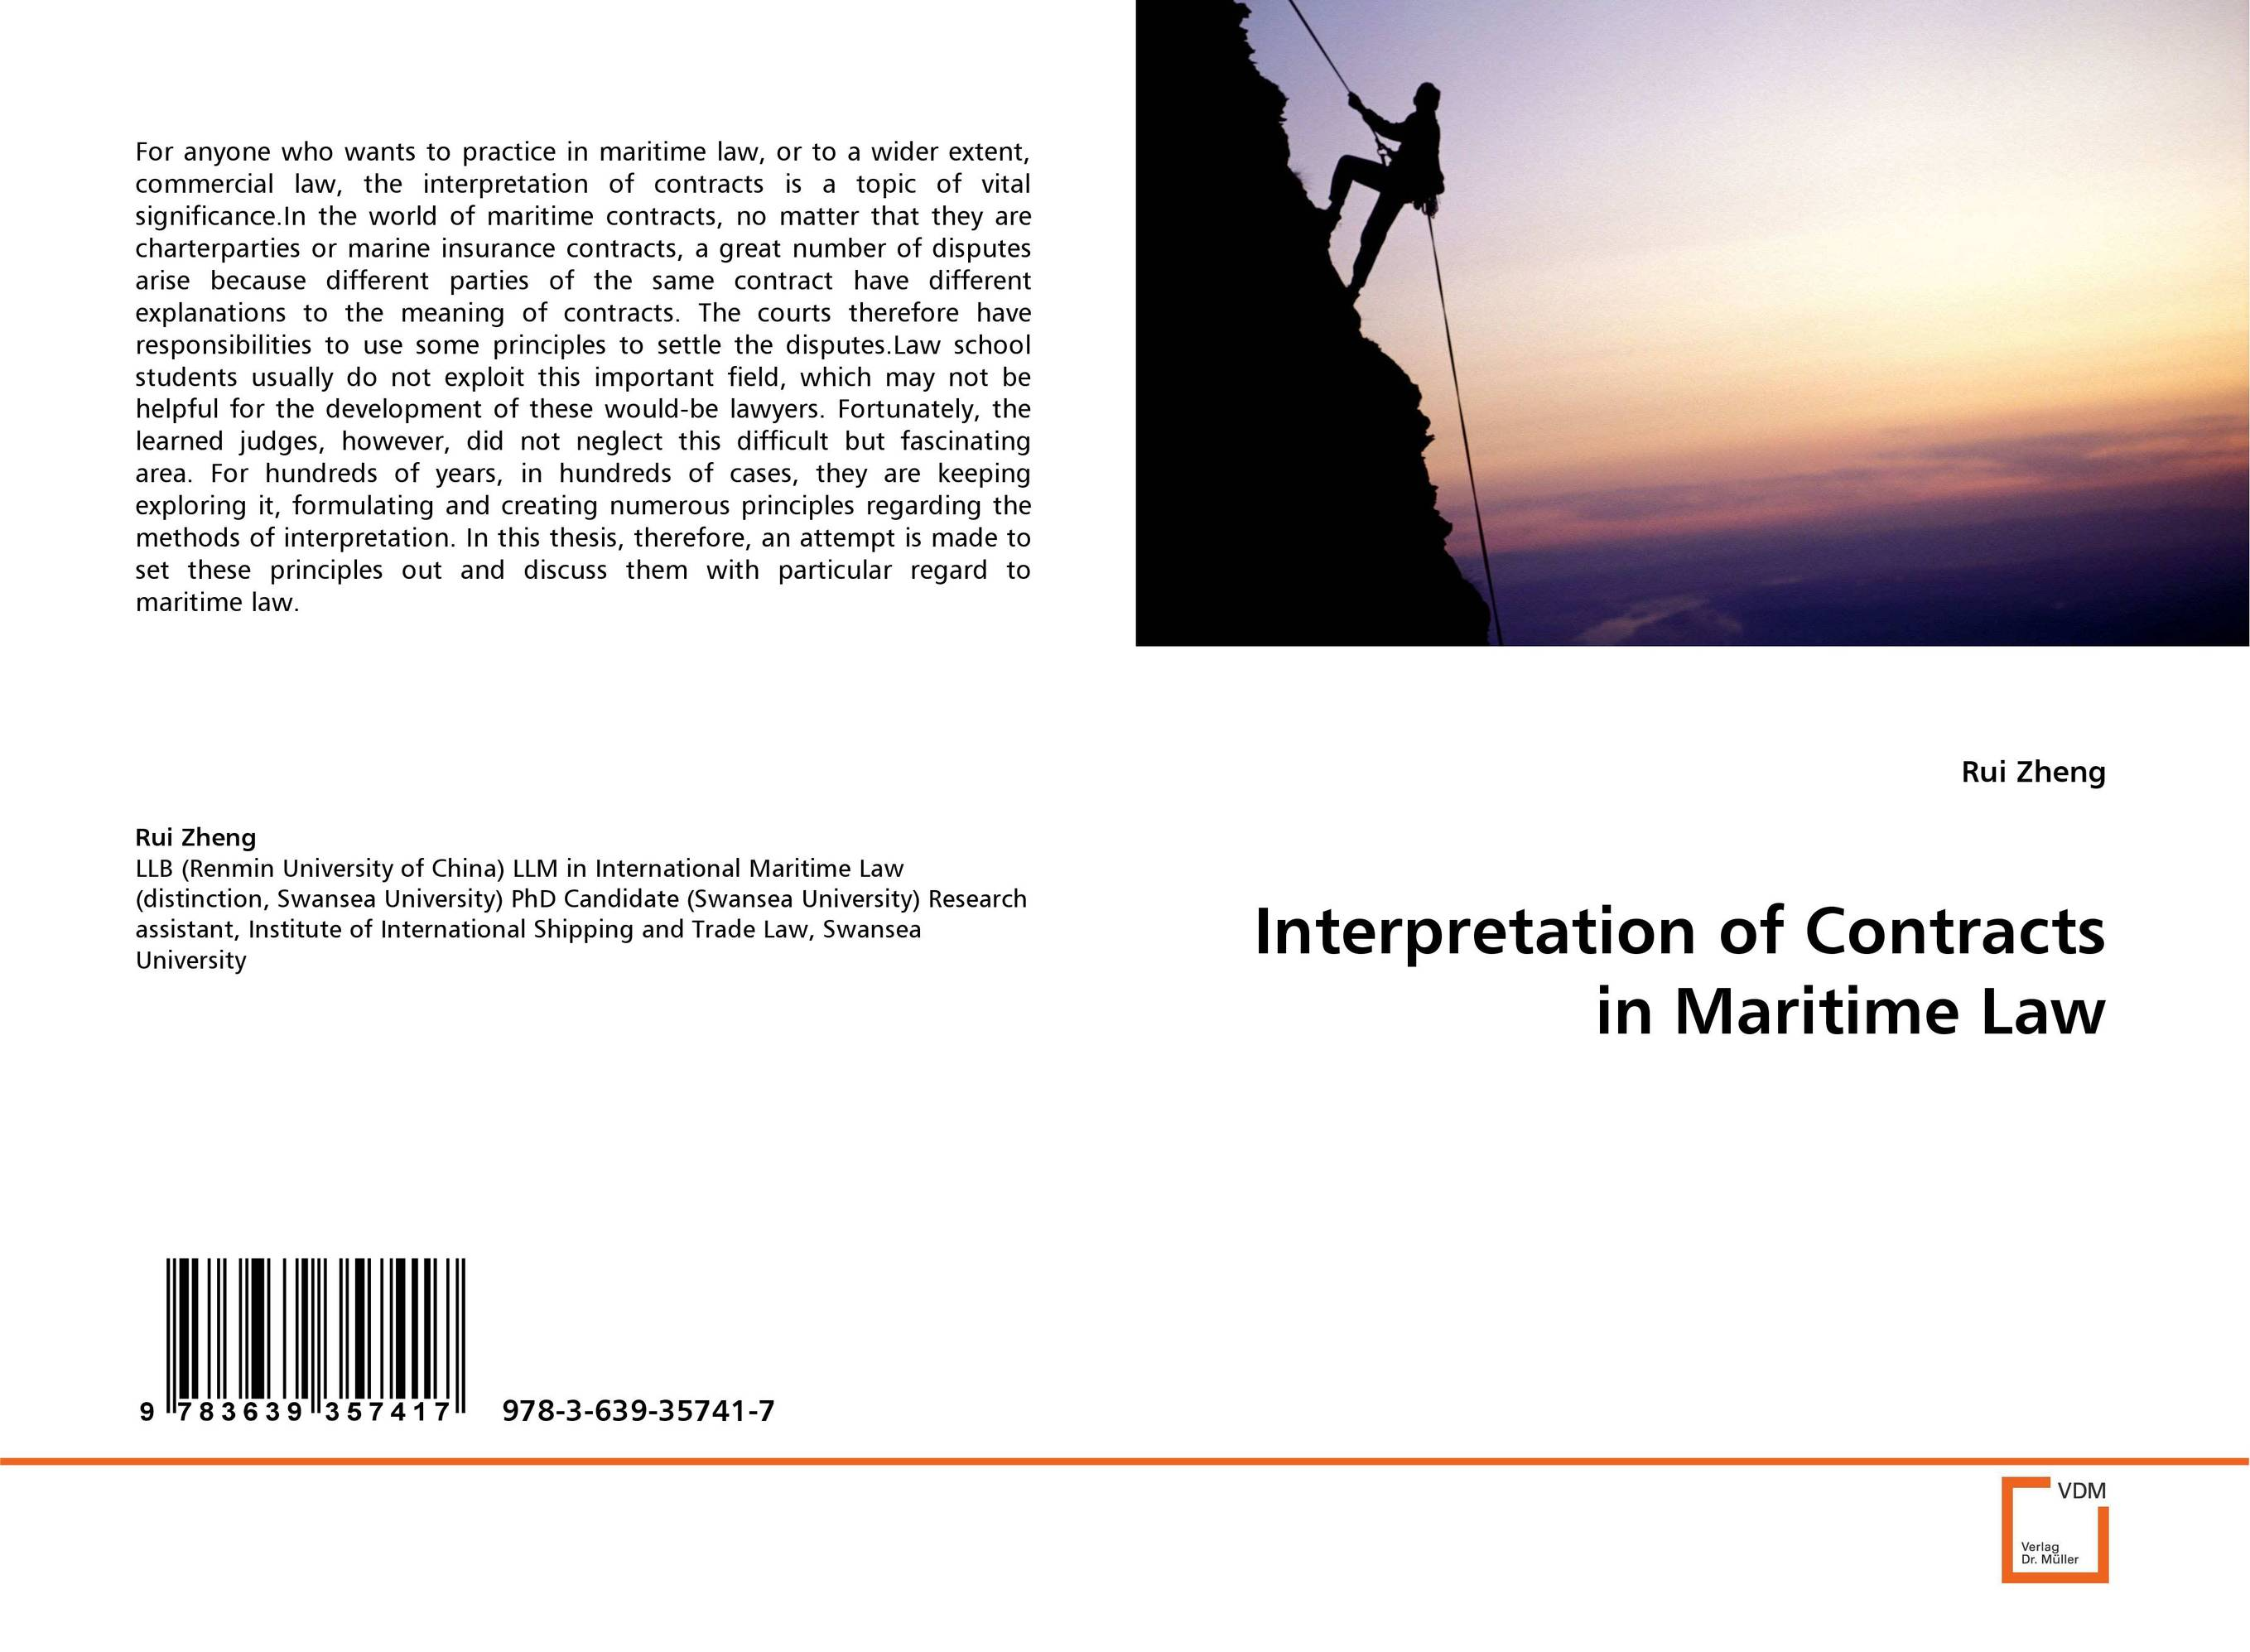 Interpretation of Contracts in Maritime Law